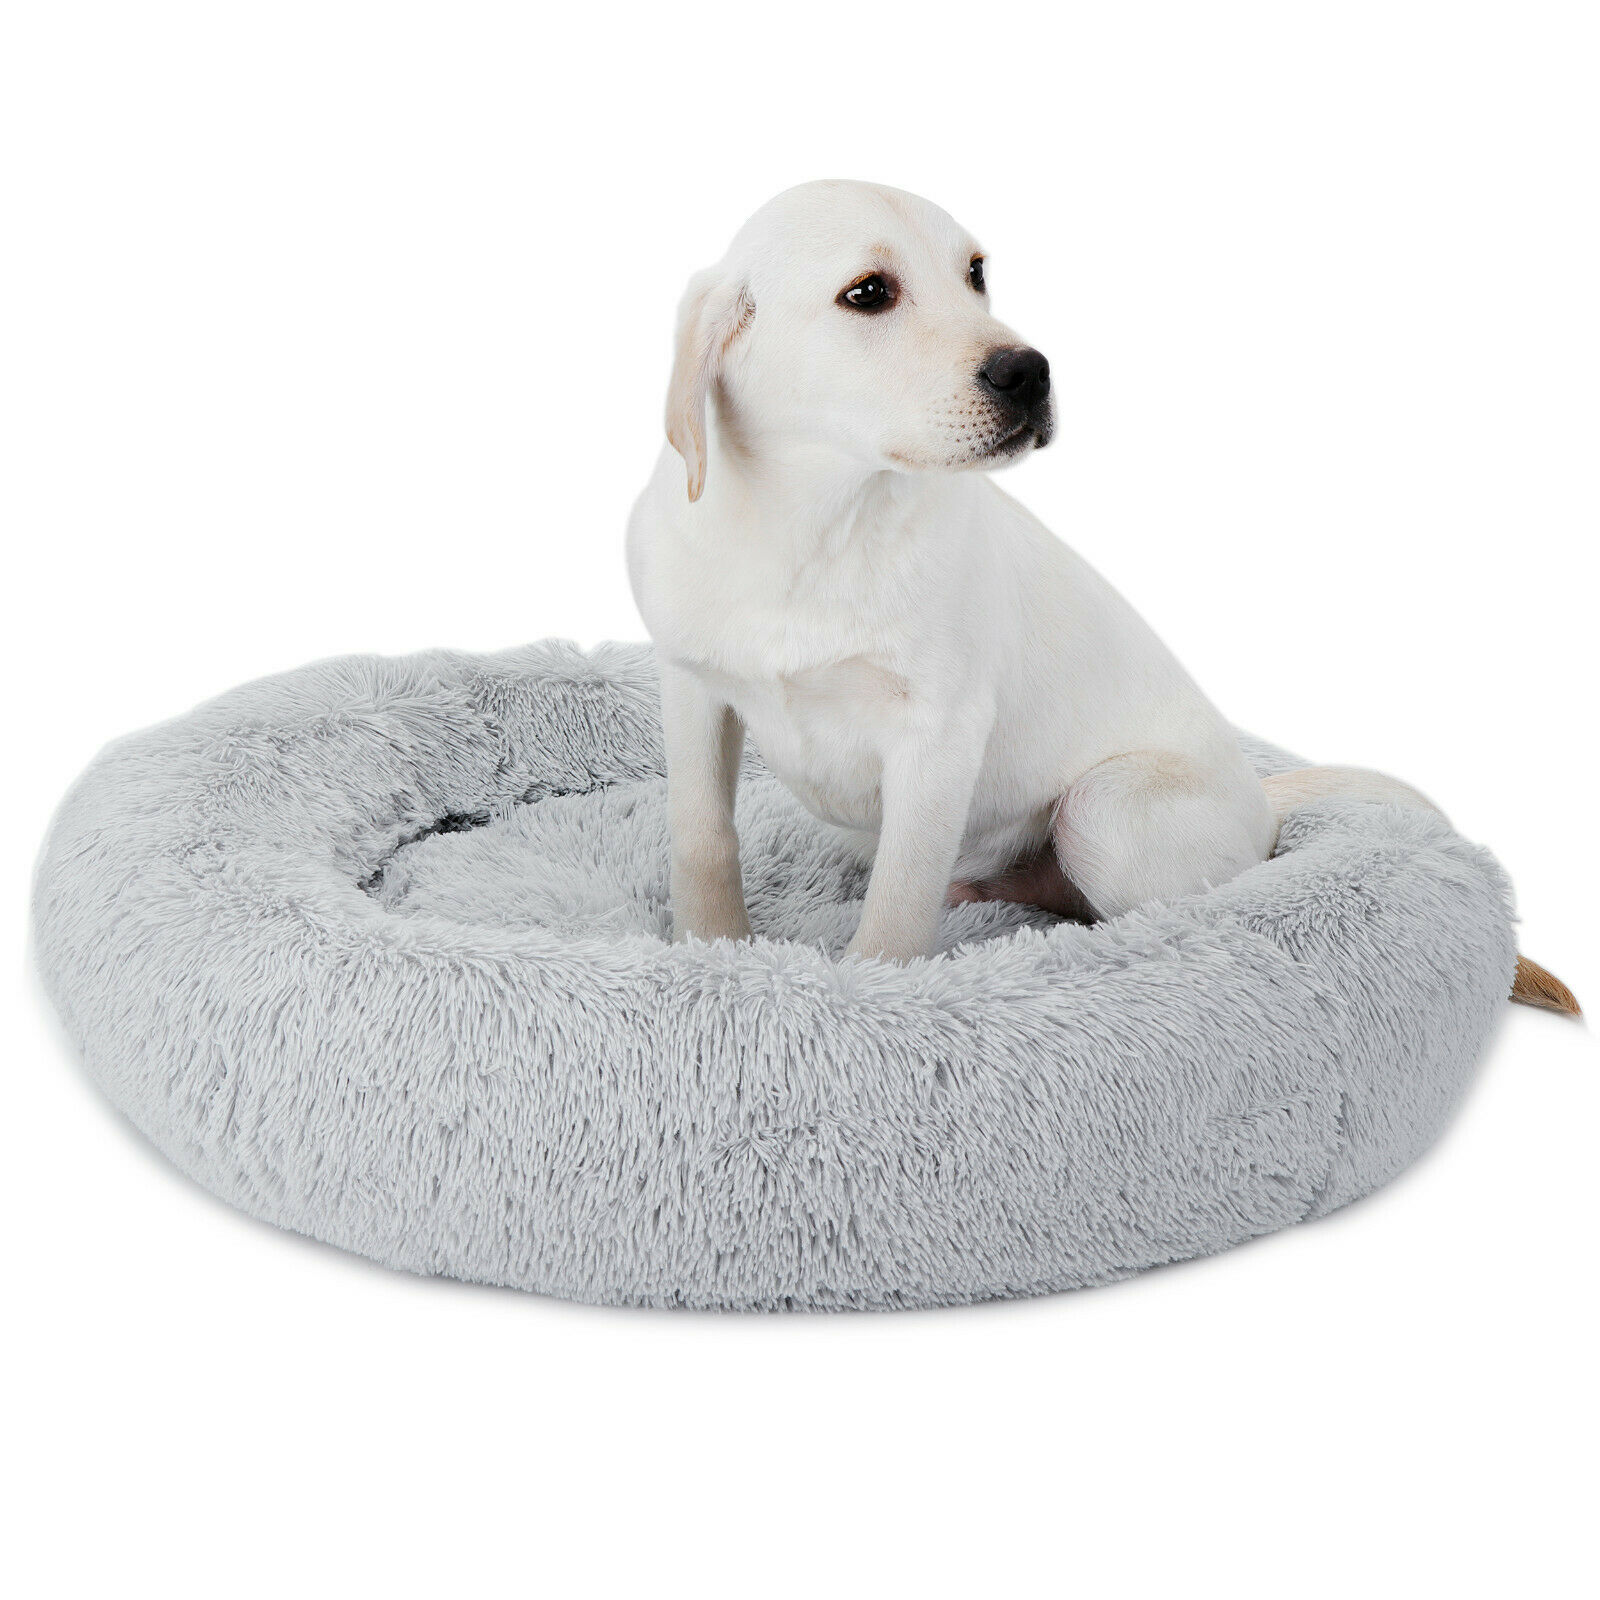 Fur Donut Cuddler Pet Calming Dogs Cats Bed Dog Beds Soft Warmer Dogs Cats Bed Beds